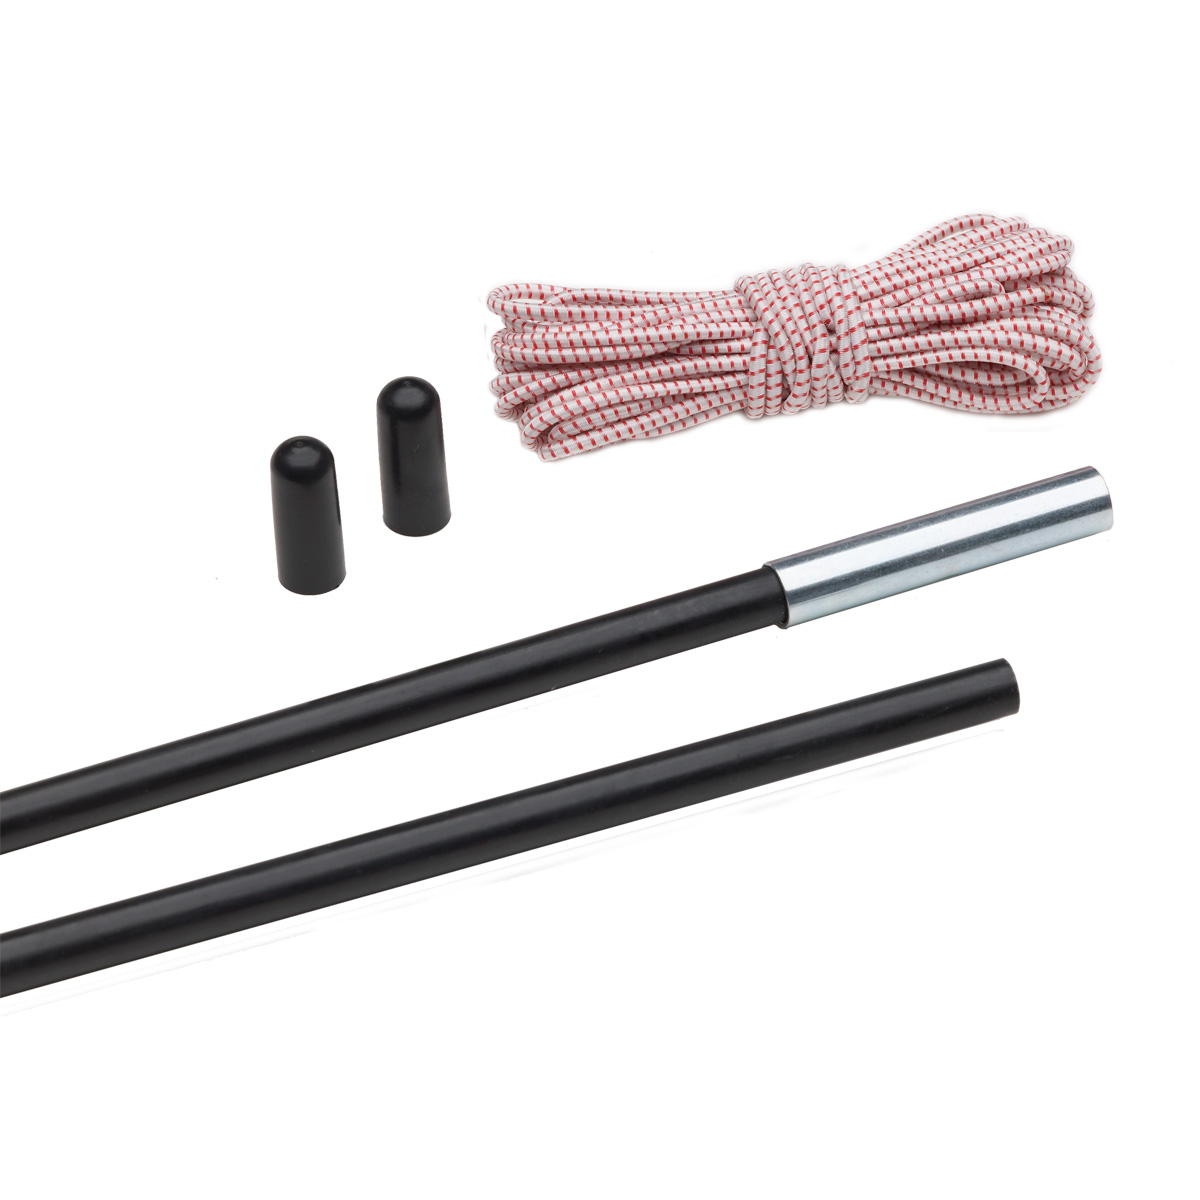 Eureka 11mm Fiberglass Pole Replacement / Repair Kit